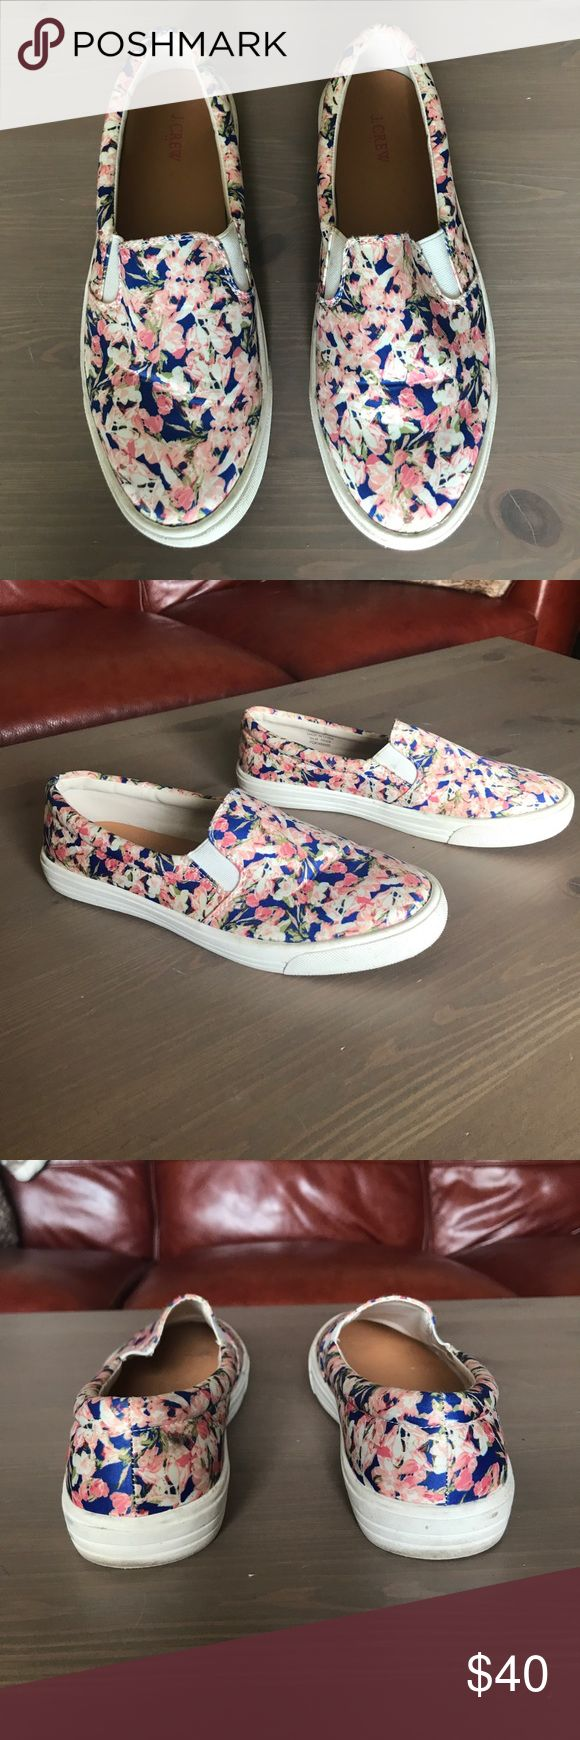 J Crew Silk Slip On Tennis Shoes Gently used - worn less than 5 times - silk - floral design - J Crew slip on sneakers J. Crew Shoes Sneakers